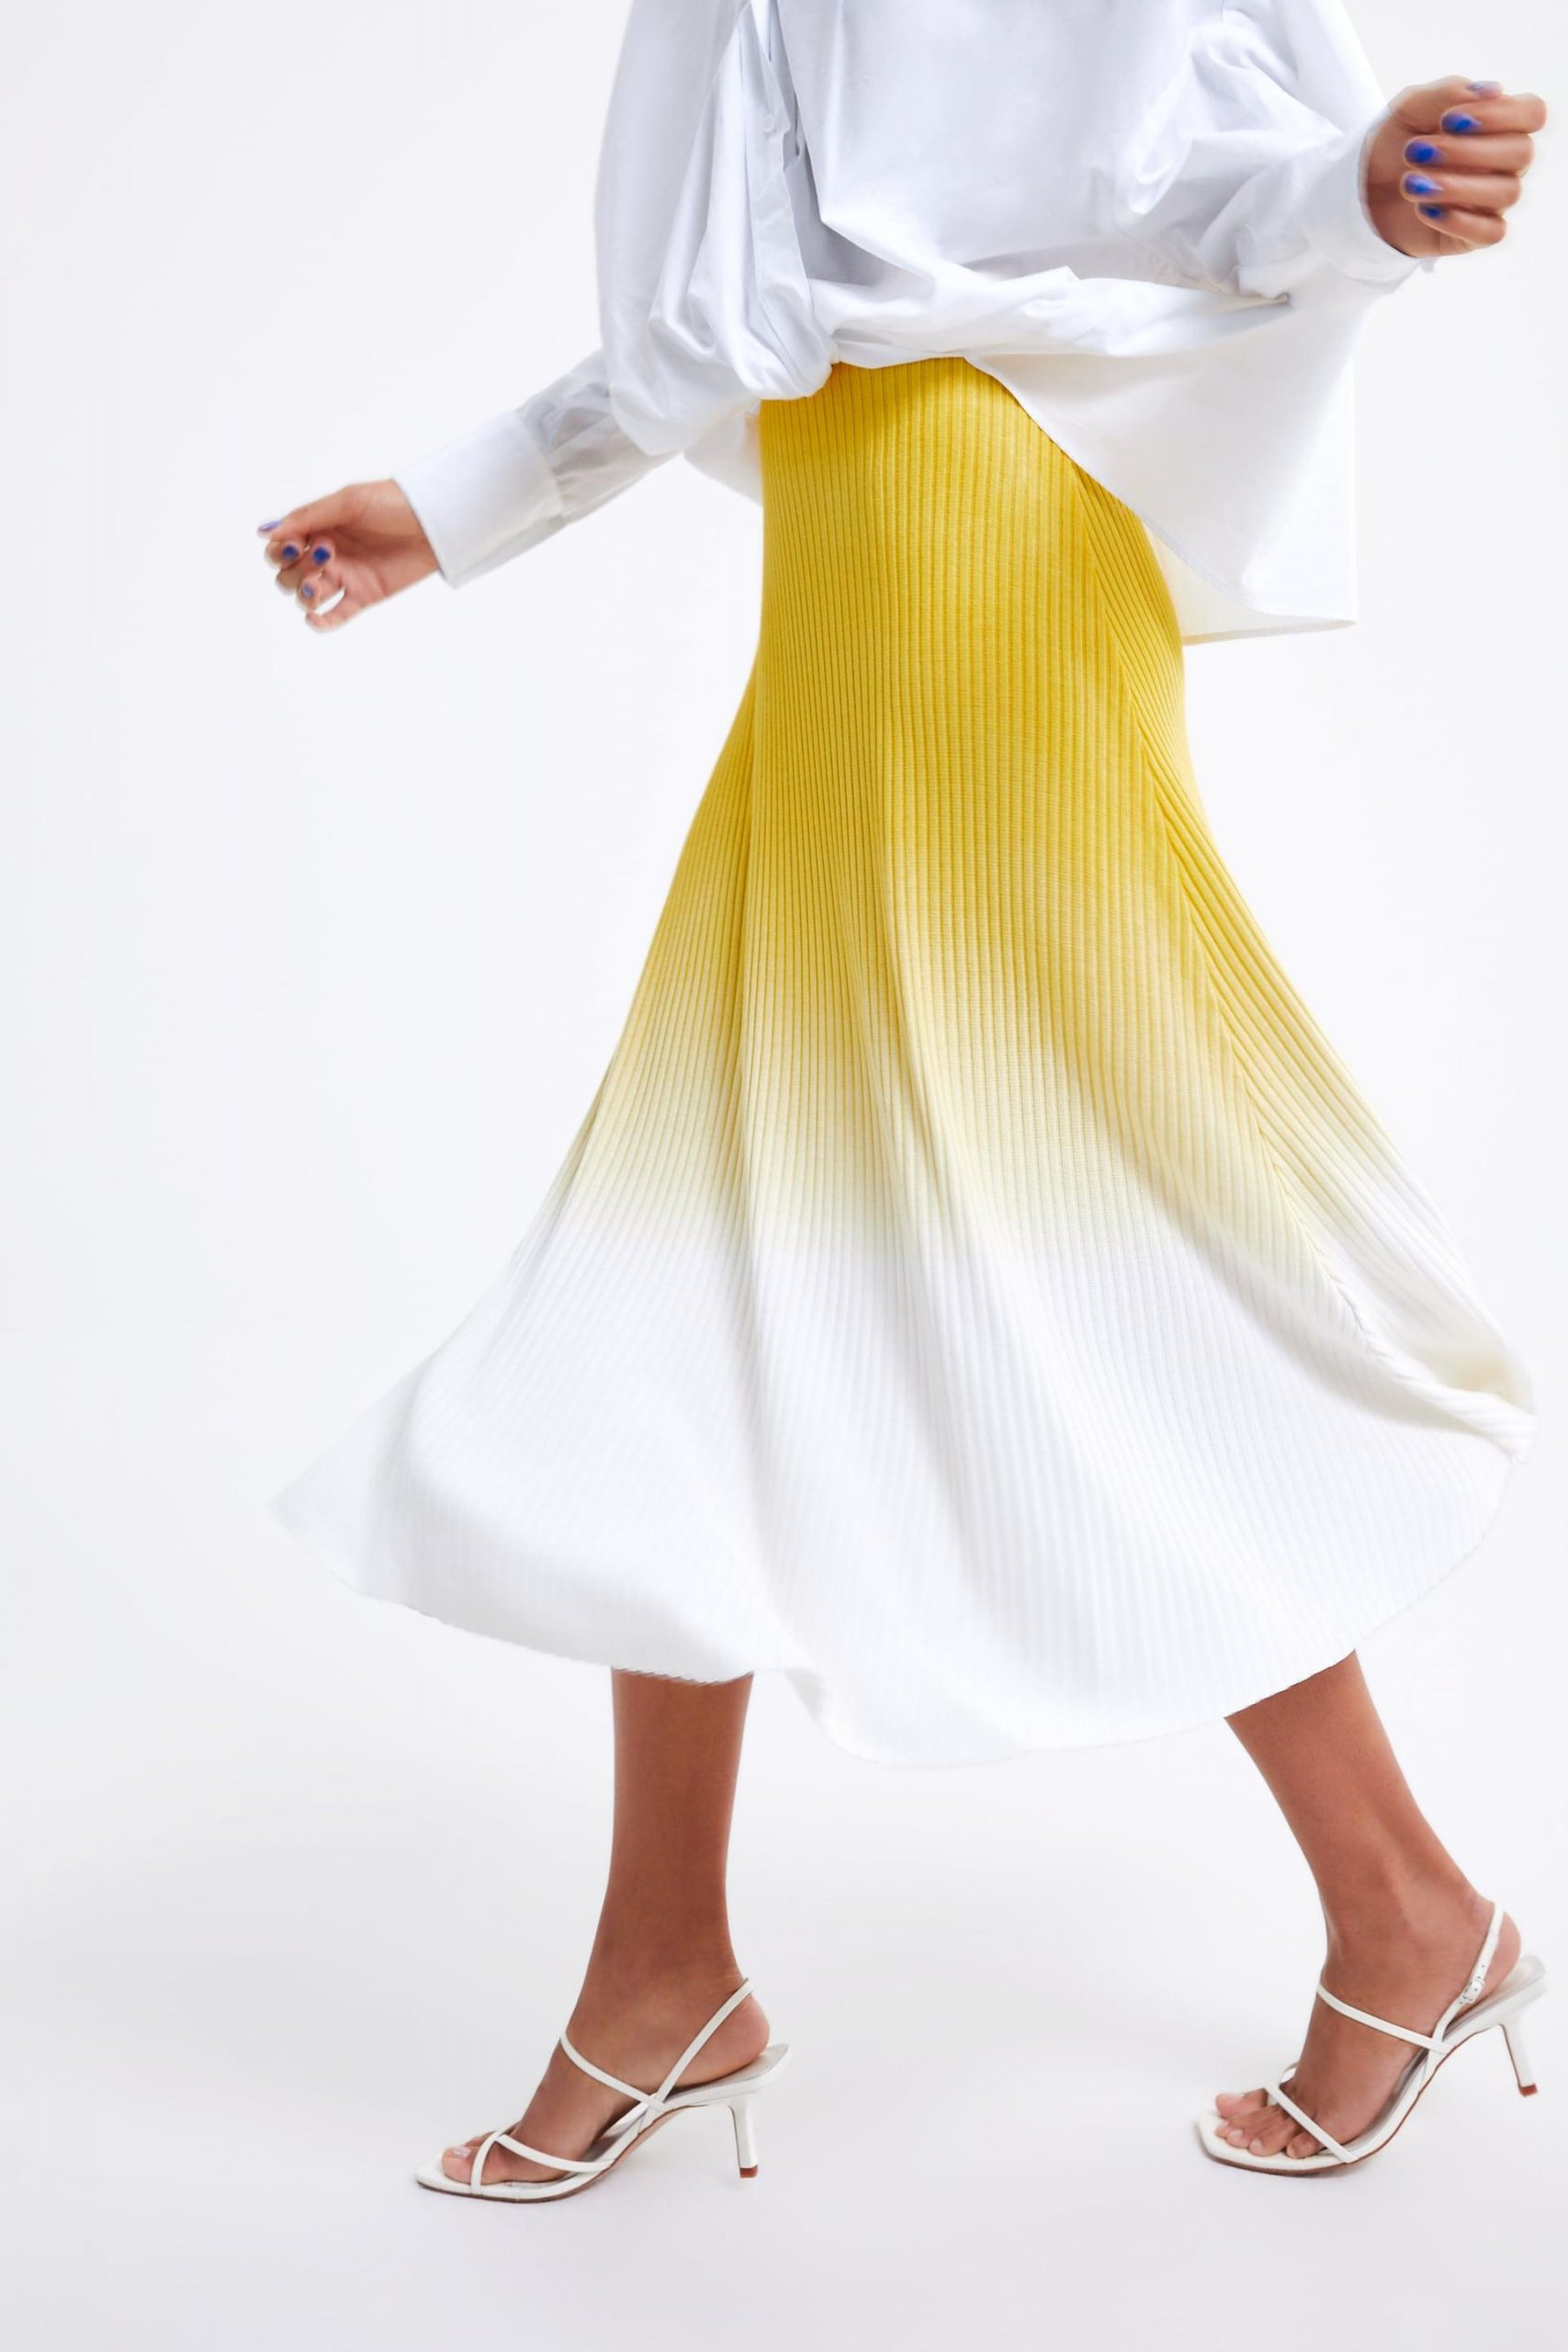 How to Wear Pastels 2019 Updated | Ombre Pastel Midi Skirt |www.kittyandb.com #YellowMidiSkirt #YellowandWhite #Chic #Pastel #Skirt #OutfitInspiration